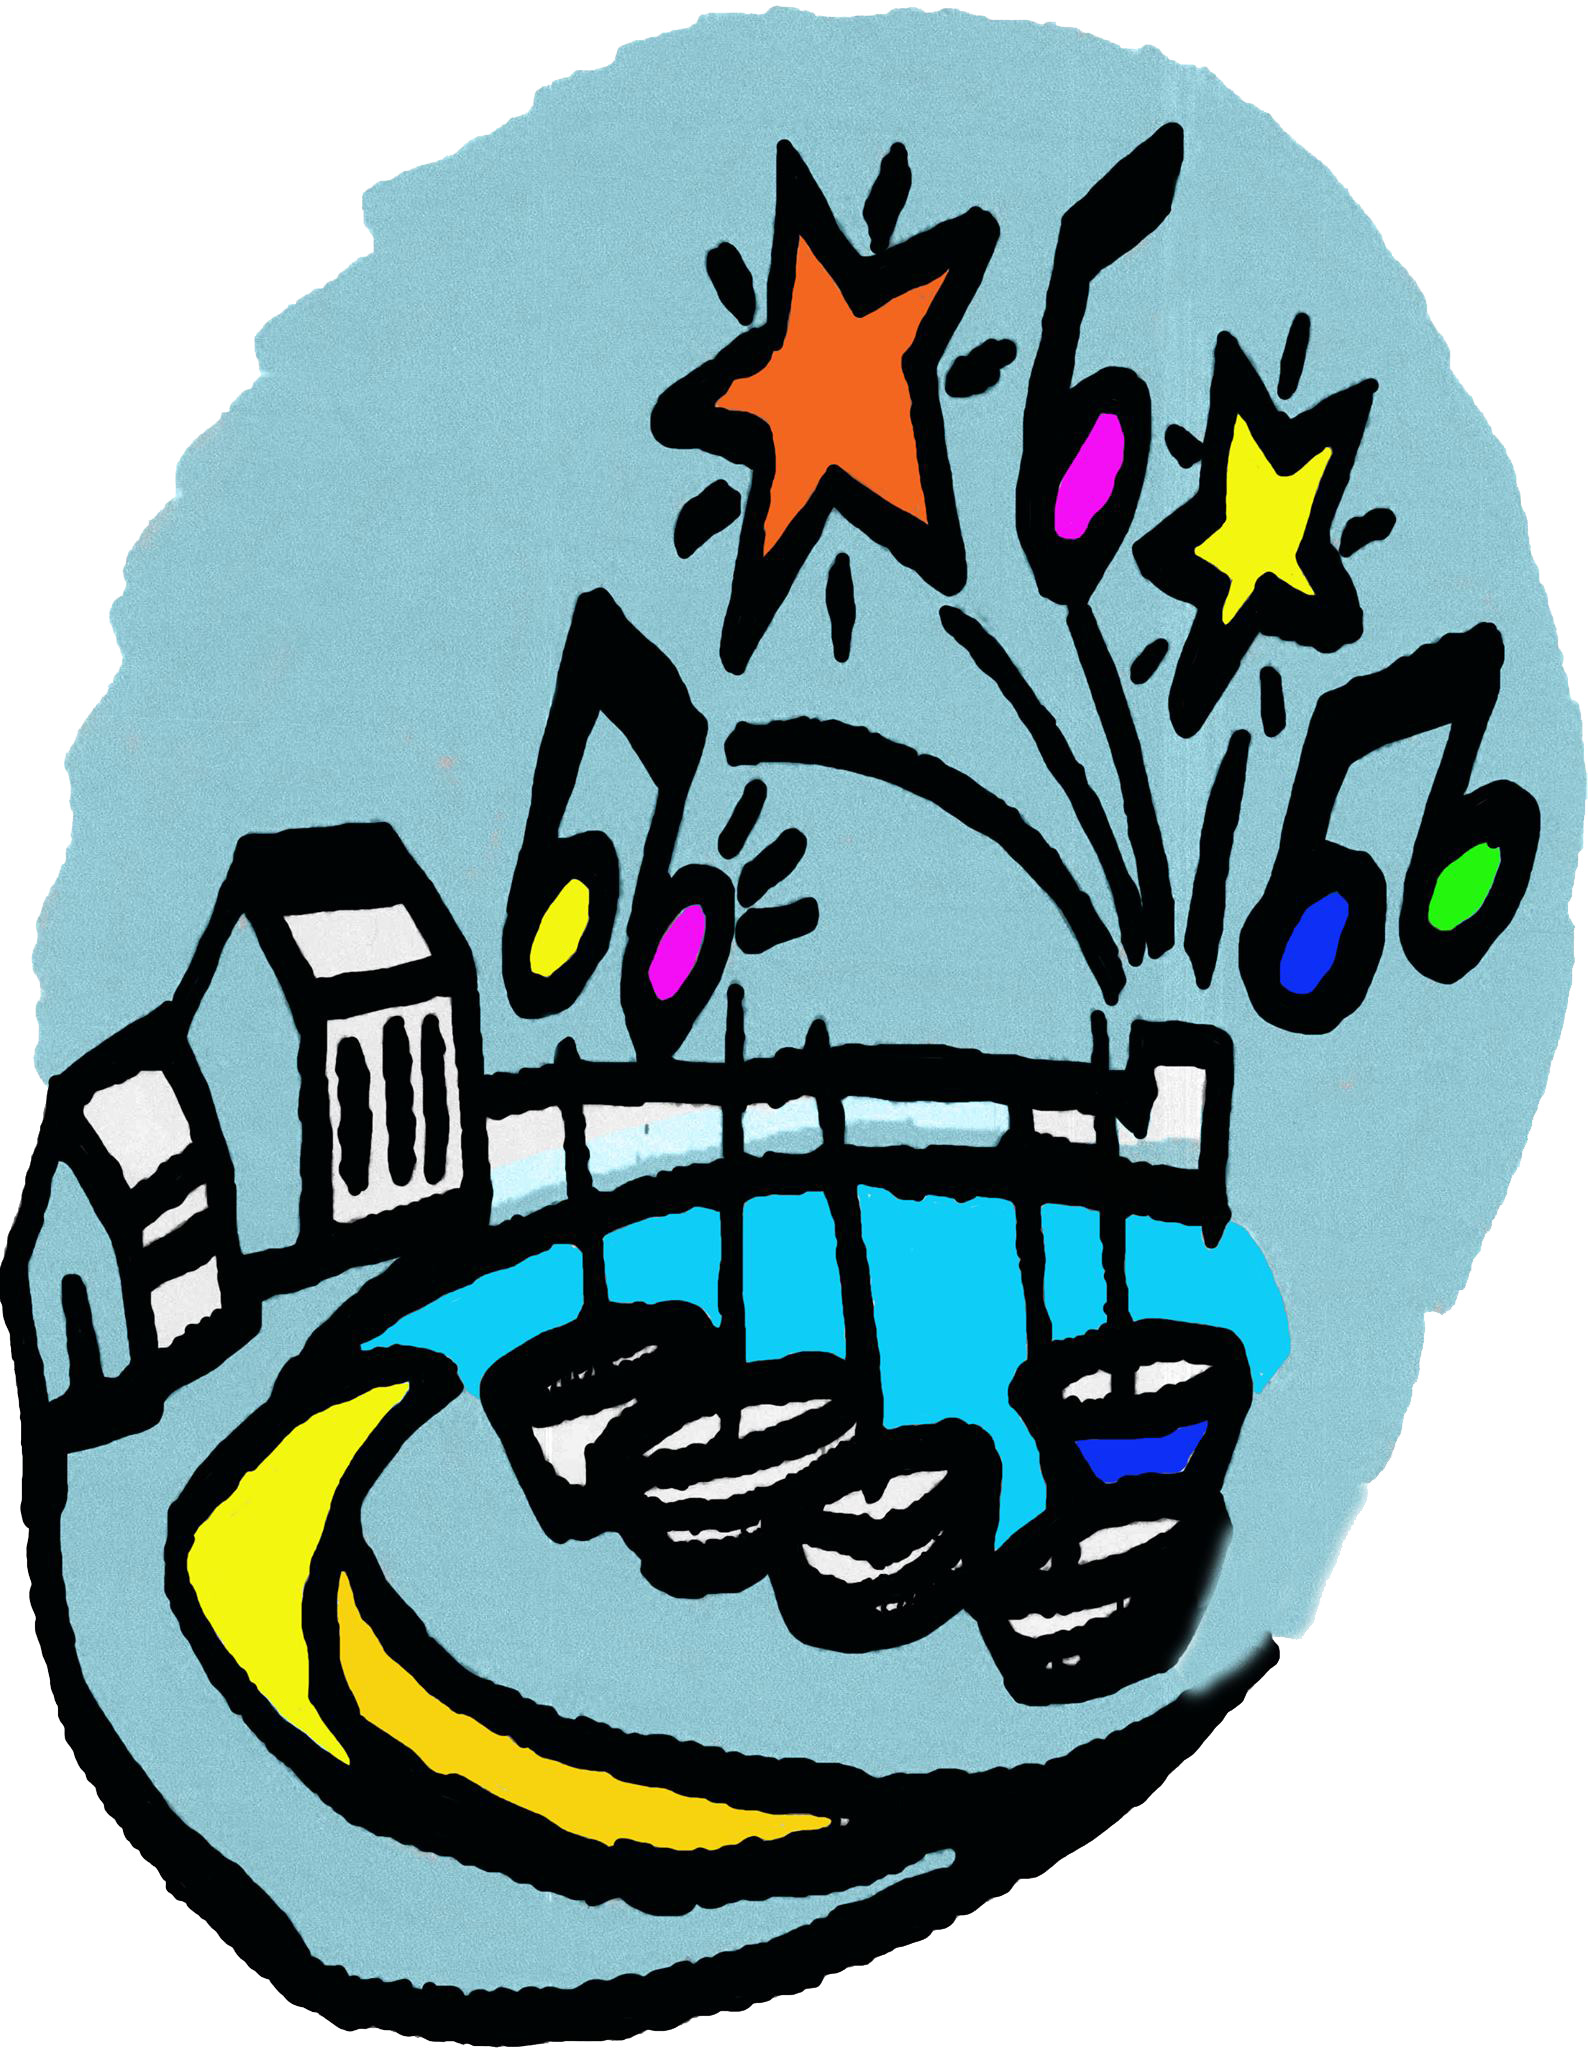 Thanks clipart speech festival. For joining us at